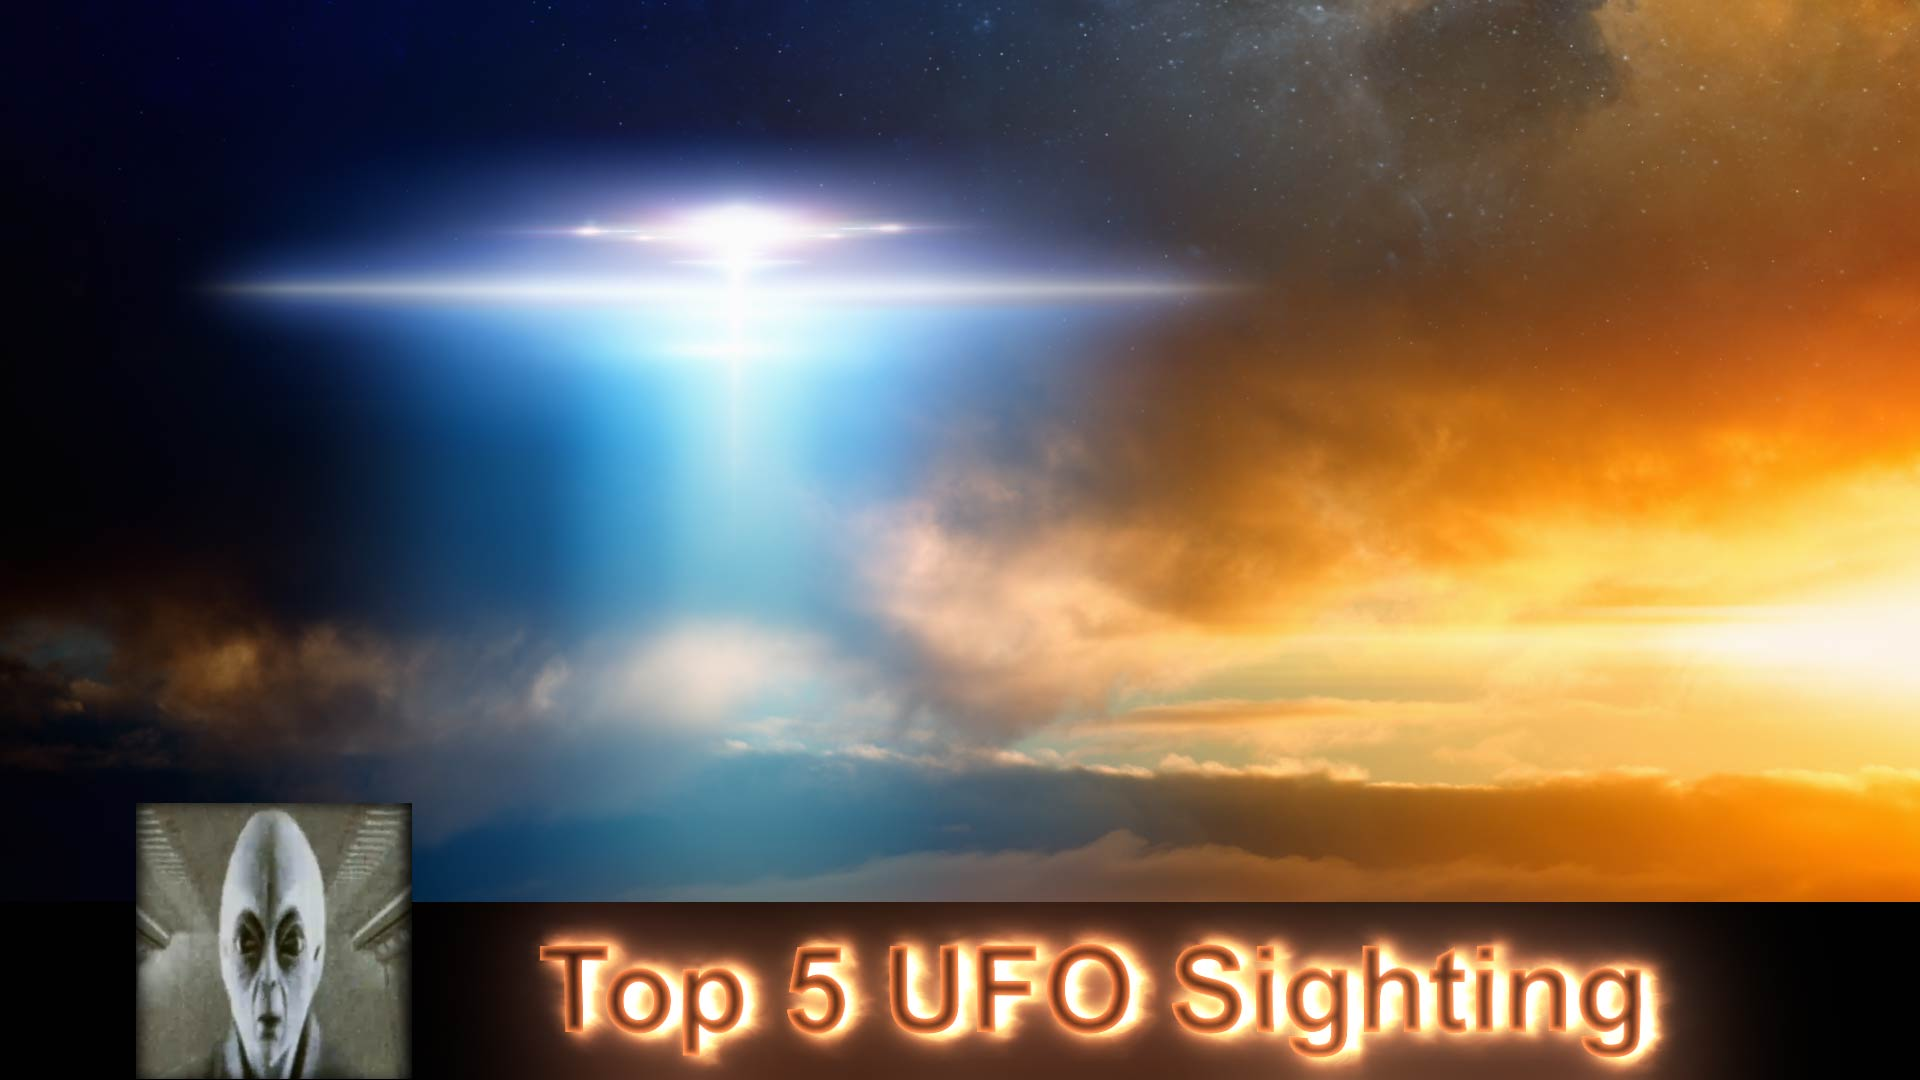 Top 5 UFO Sightings August 18th 2018